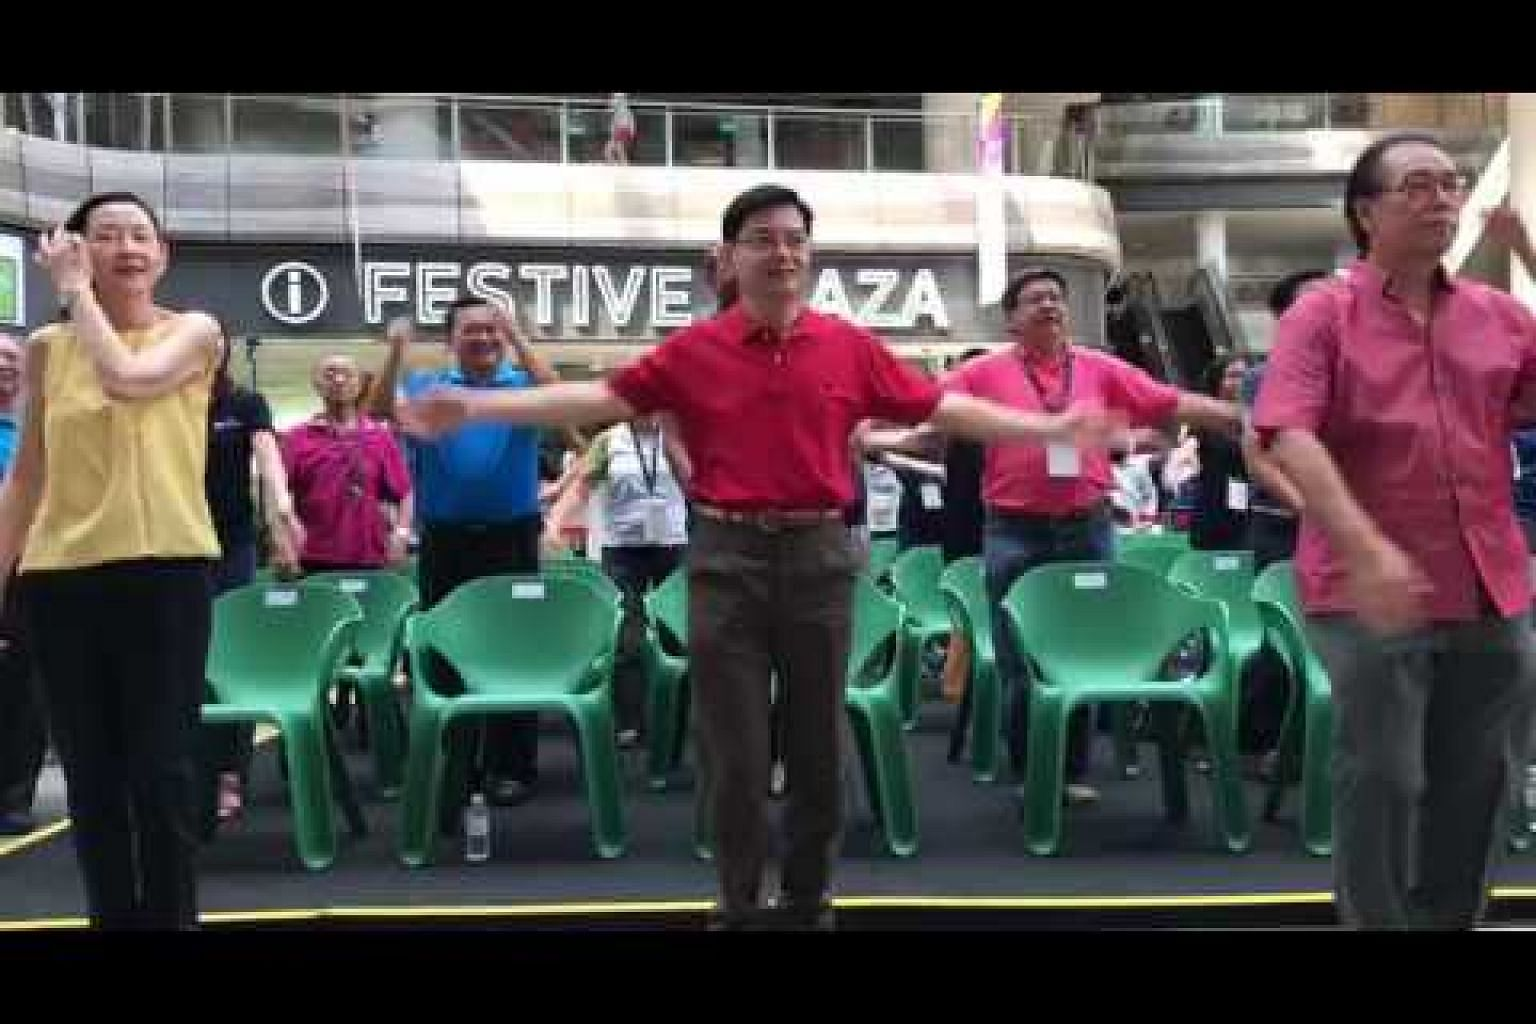 Minister Heng doing the High 5 for Brain Health workout